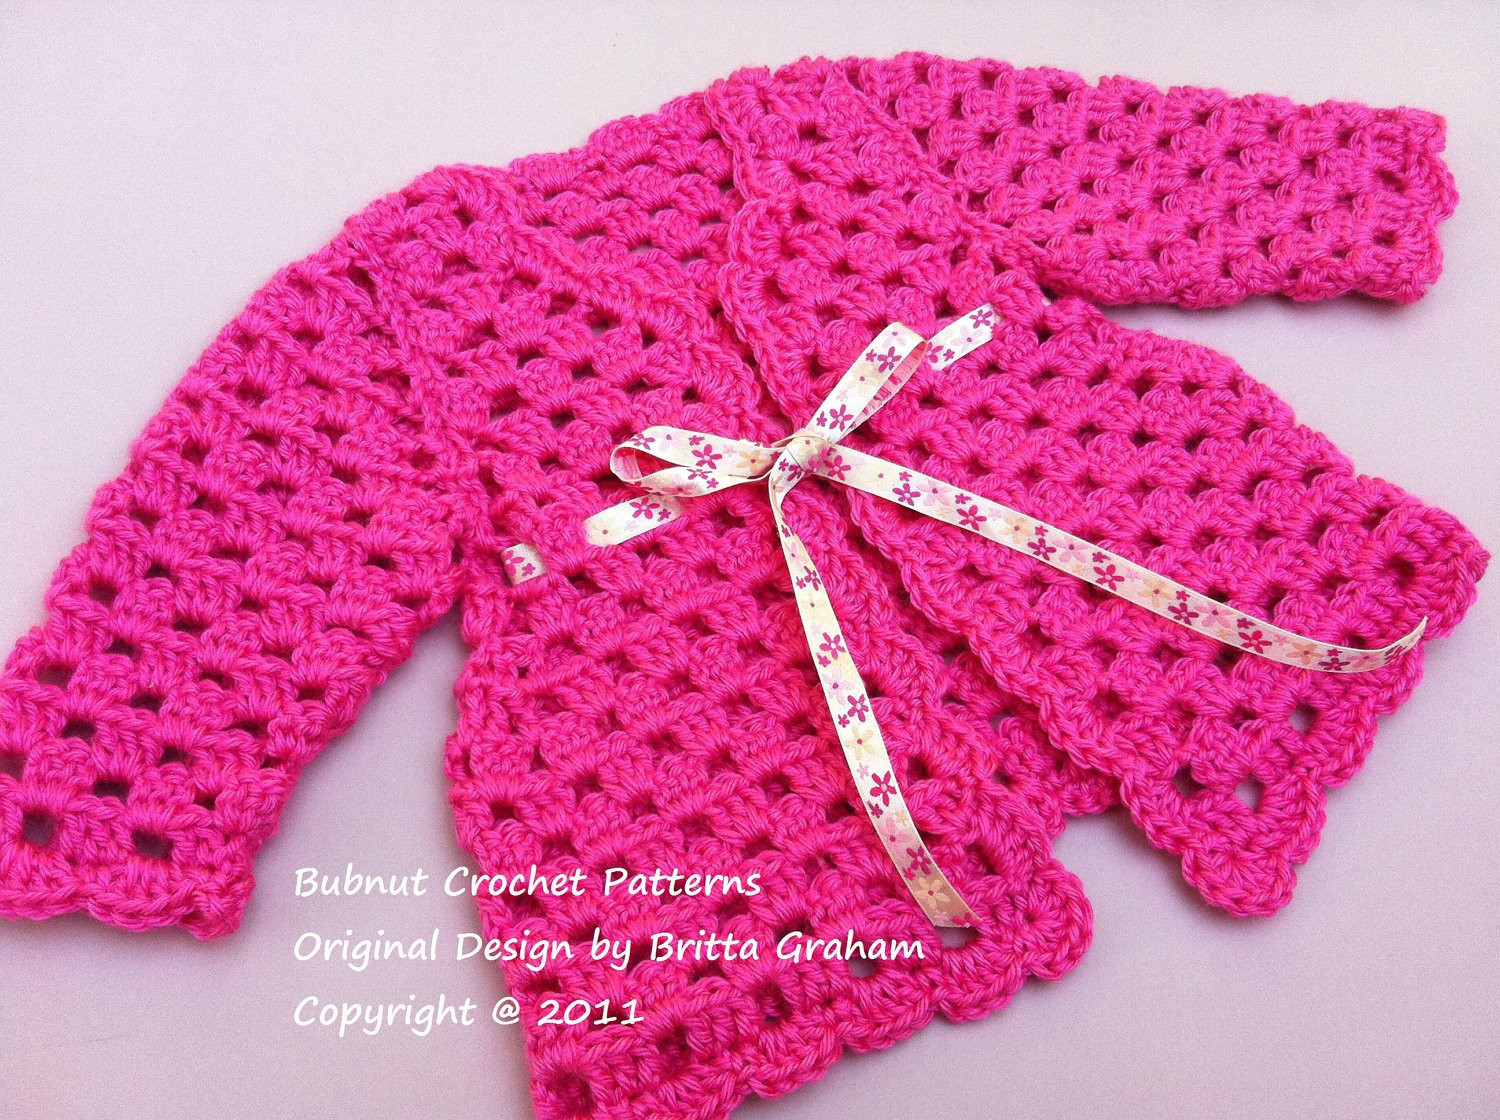 Crochet Baby Cardigan Lovely Crochet Baby Cardigan Pattern Sweater Crochet Pattern No 905 Of Amazing 49 Pics Crochet Baby Cardigan